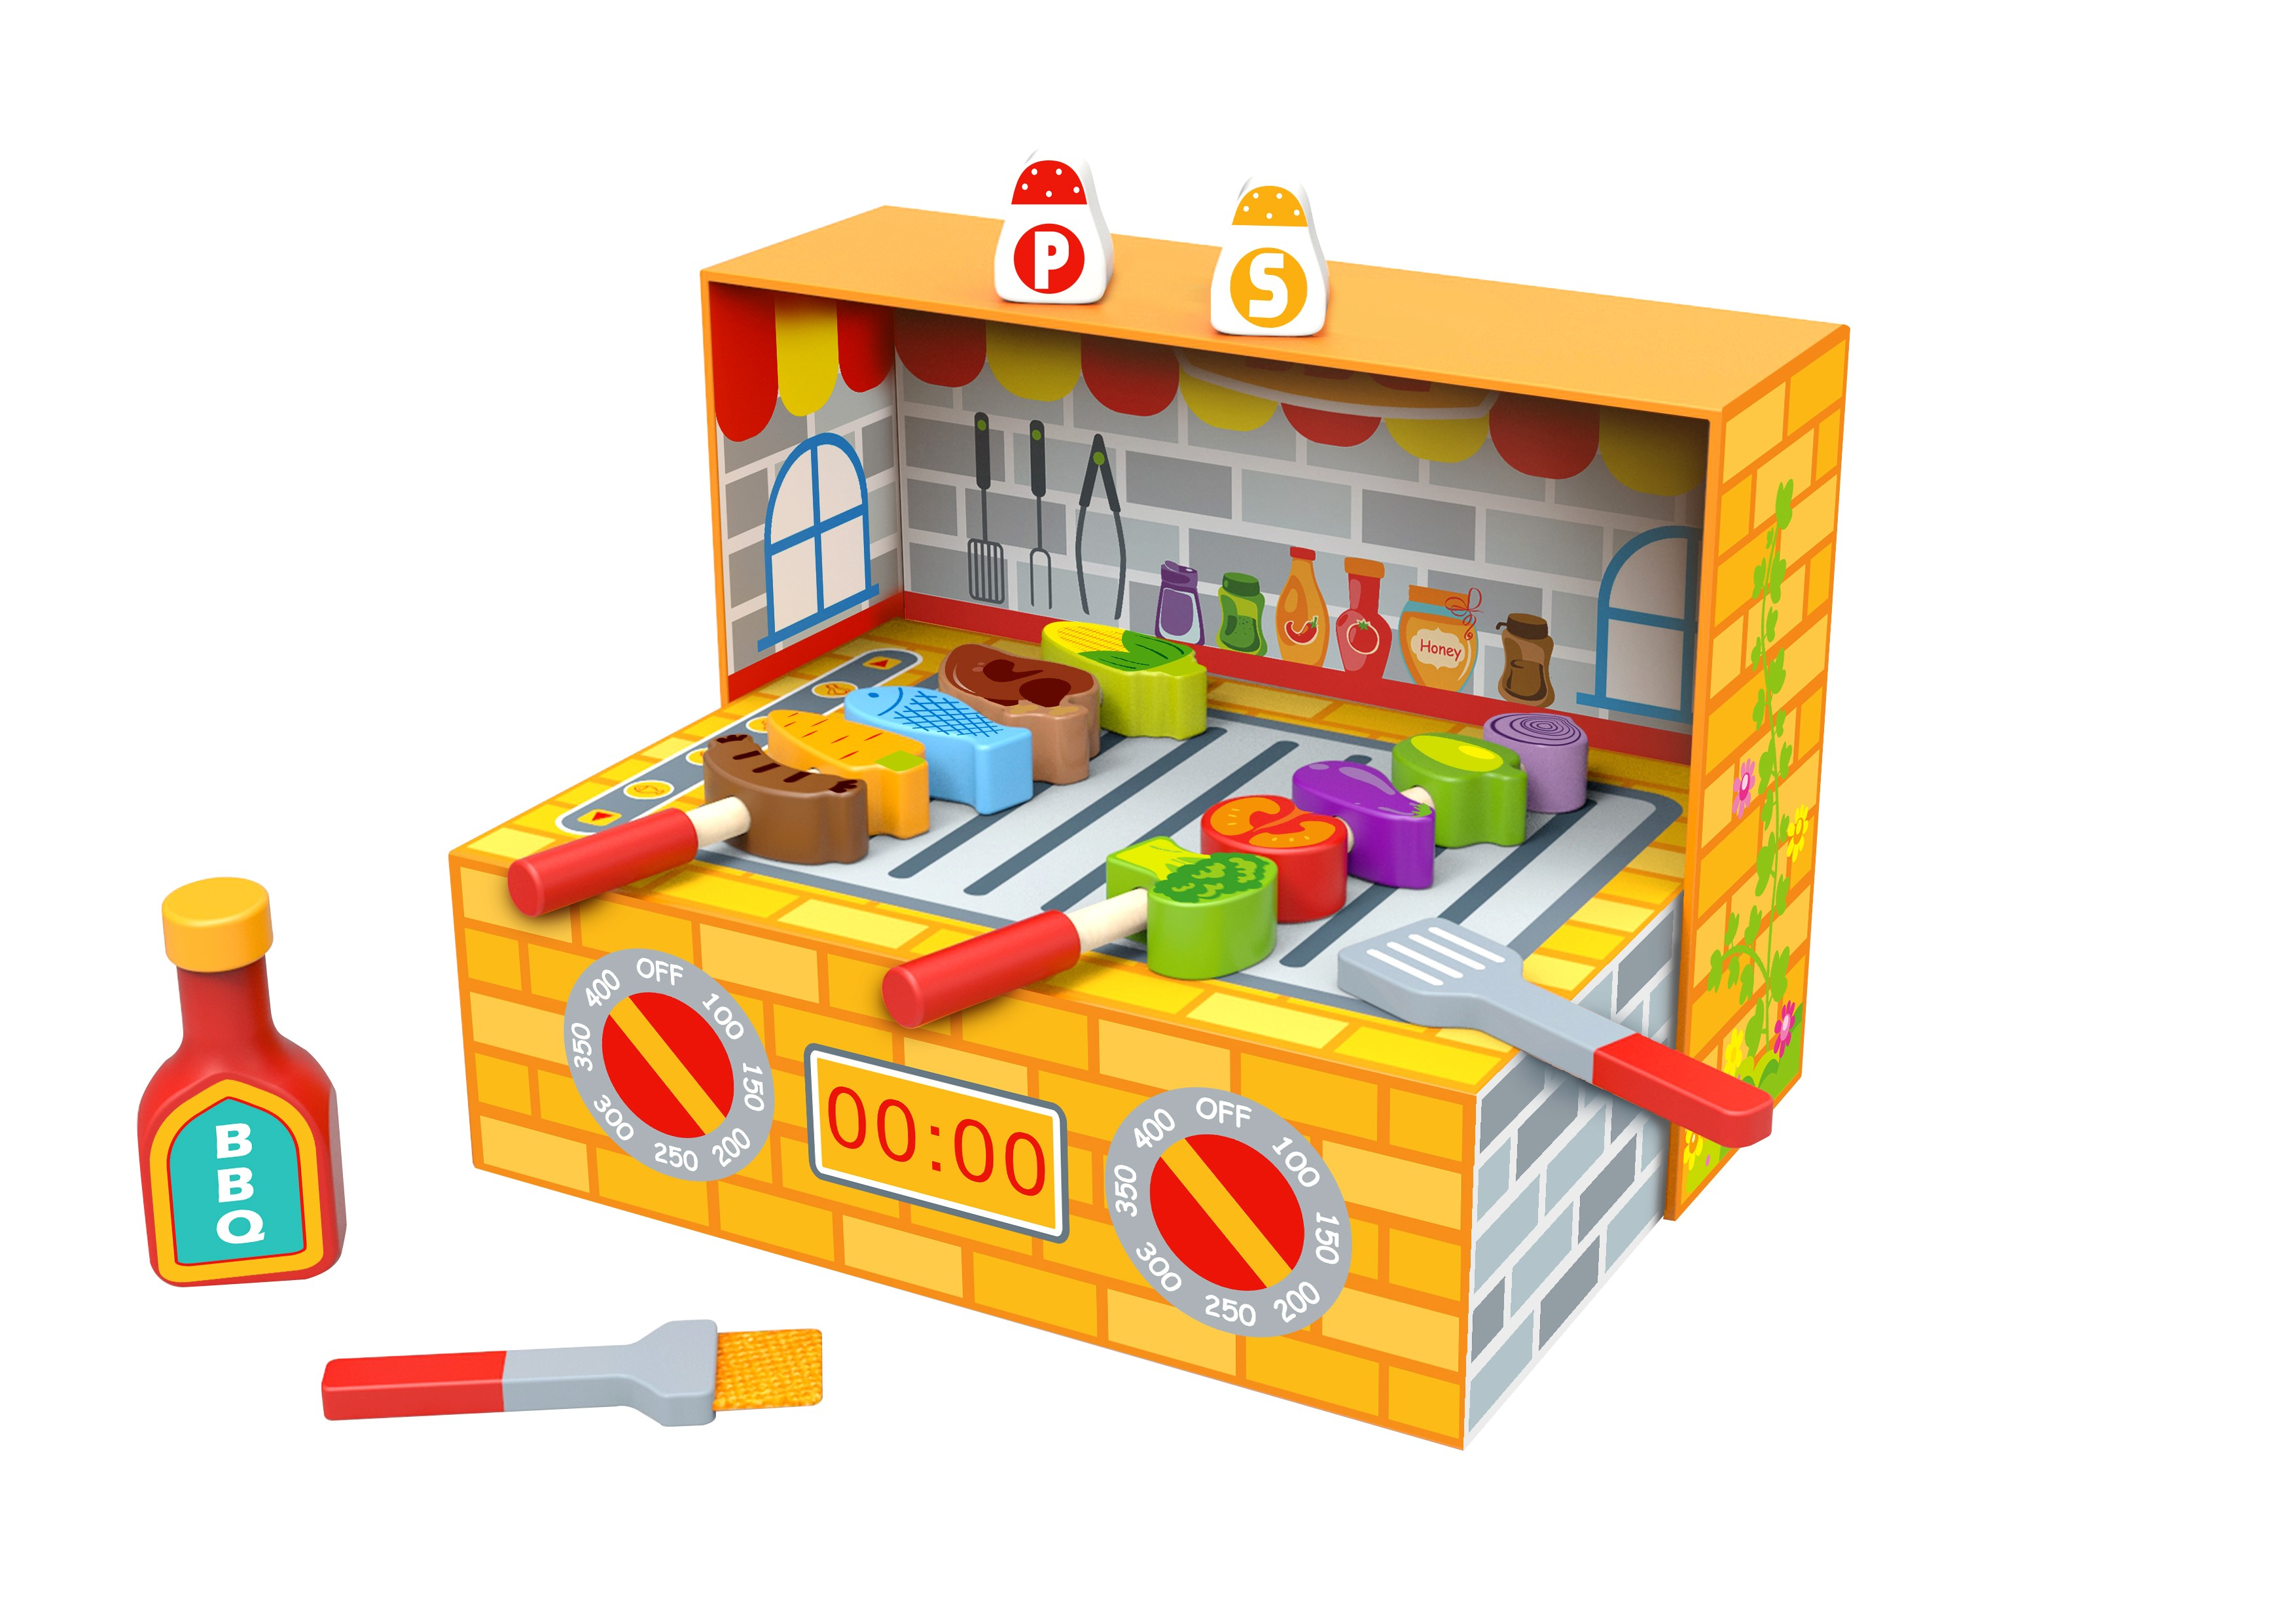 Toysters Toyster S Bbq Box Wooden Cooking Toy Playset Pretend Play Toddler Kitchen Toys Unique Wood Kitchen Accessories Play Set For Boys And